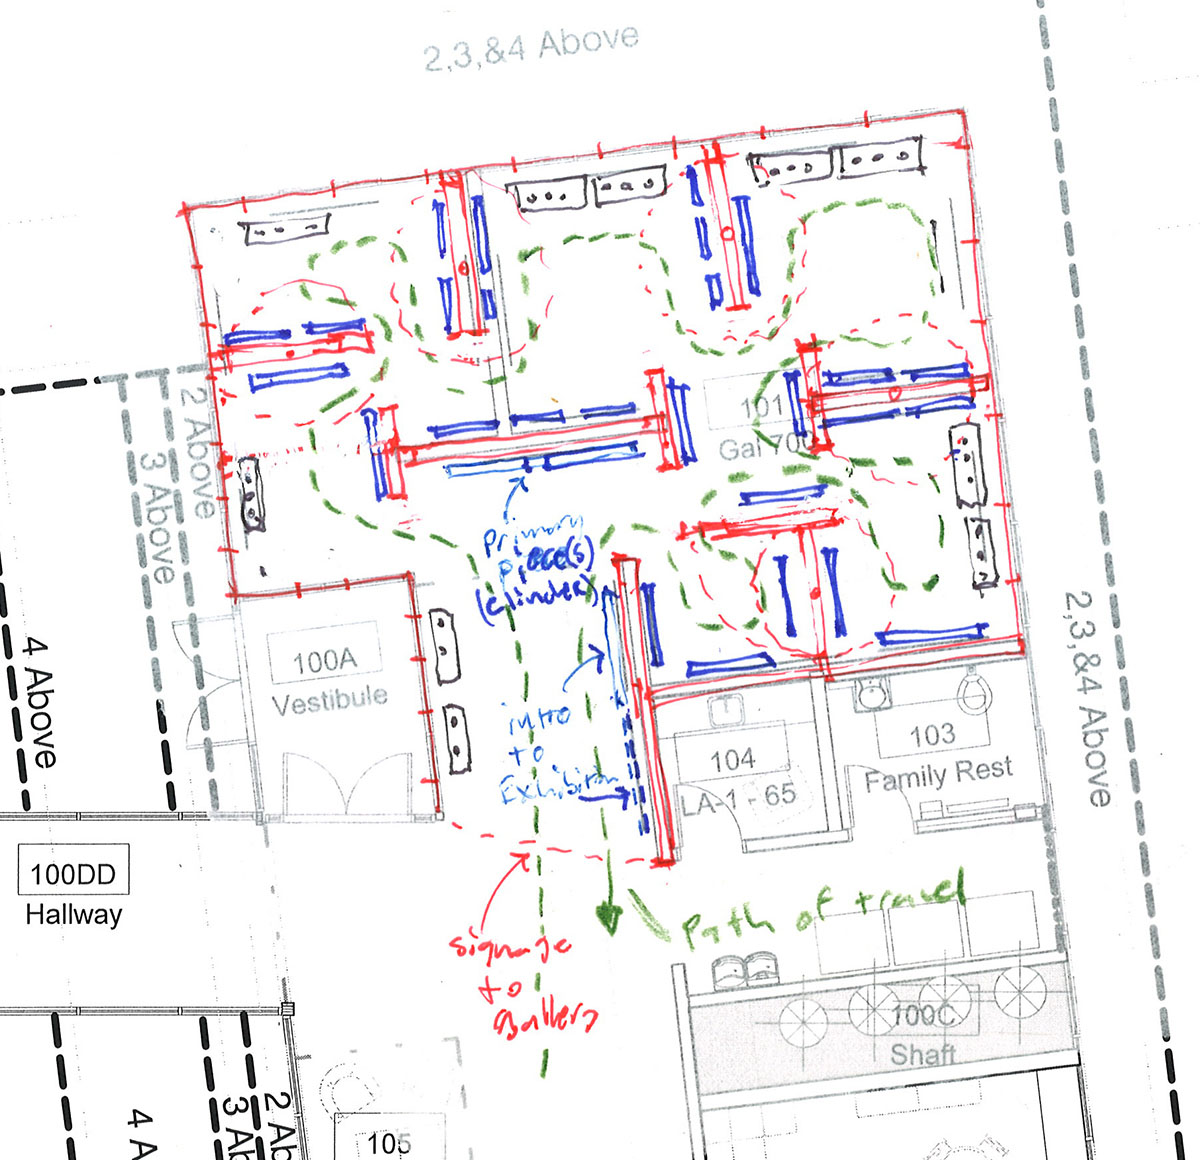 Marked up floor plan for the gallery area on the main level in the center for healing.